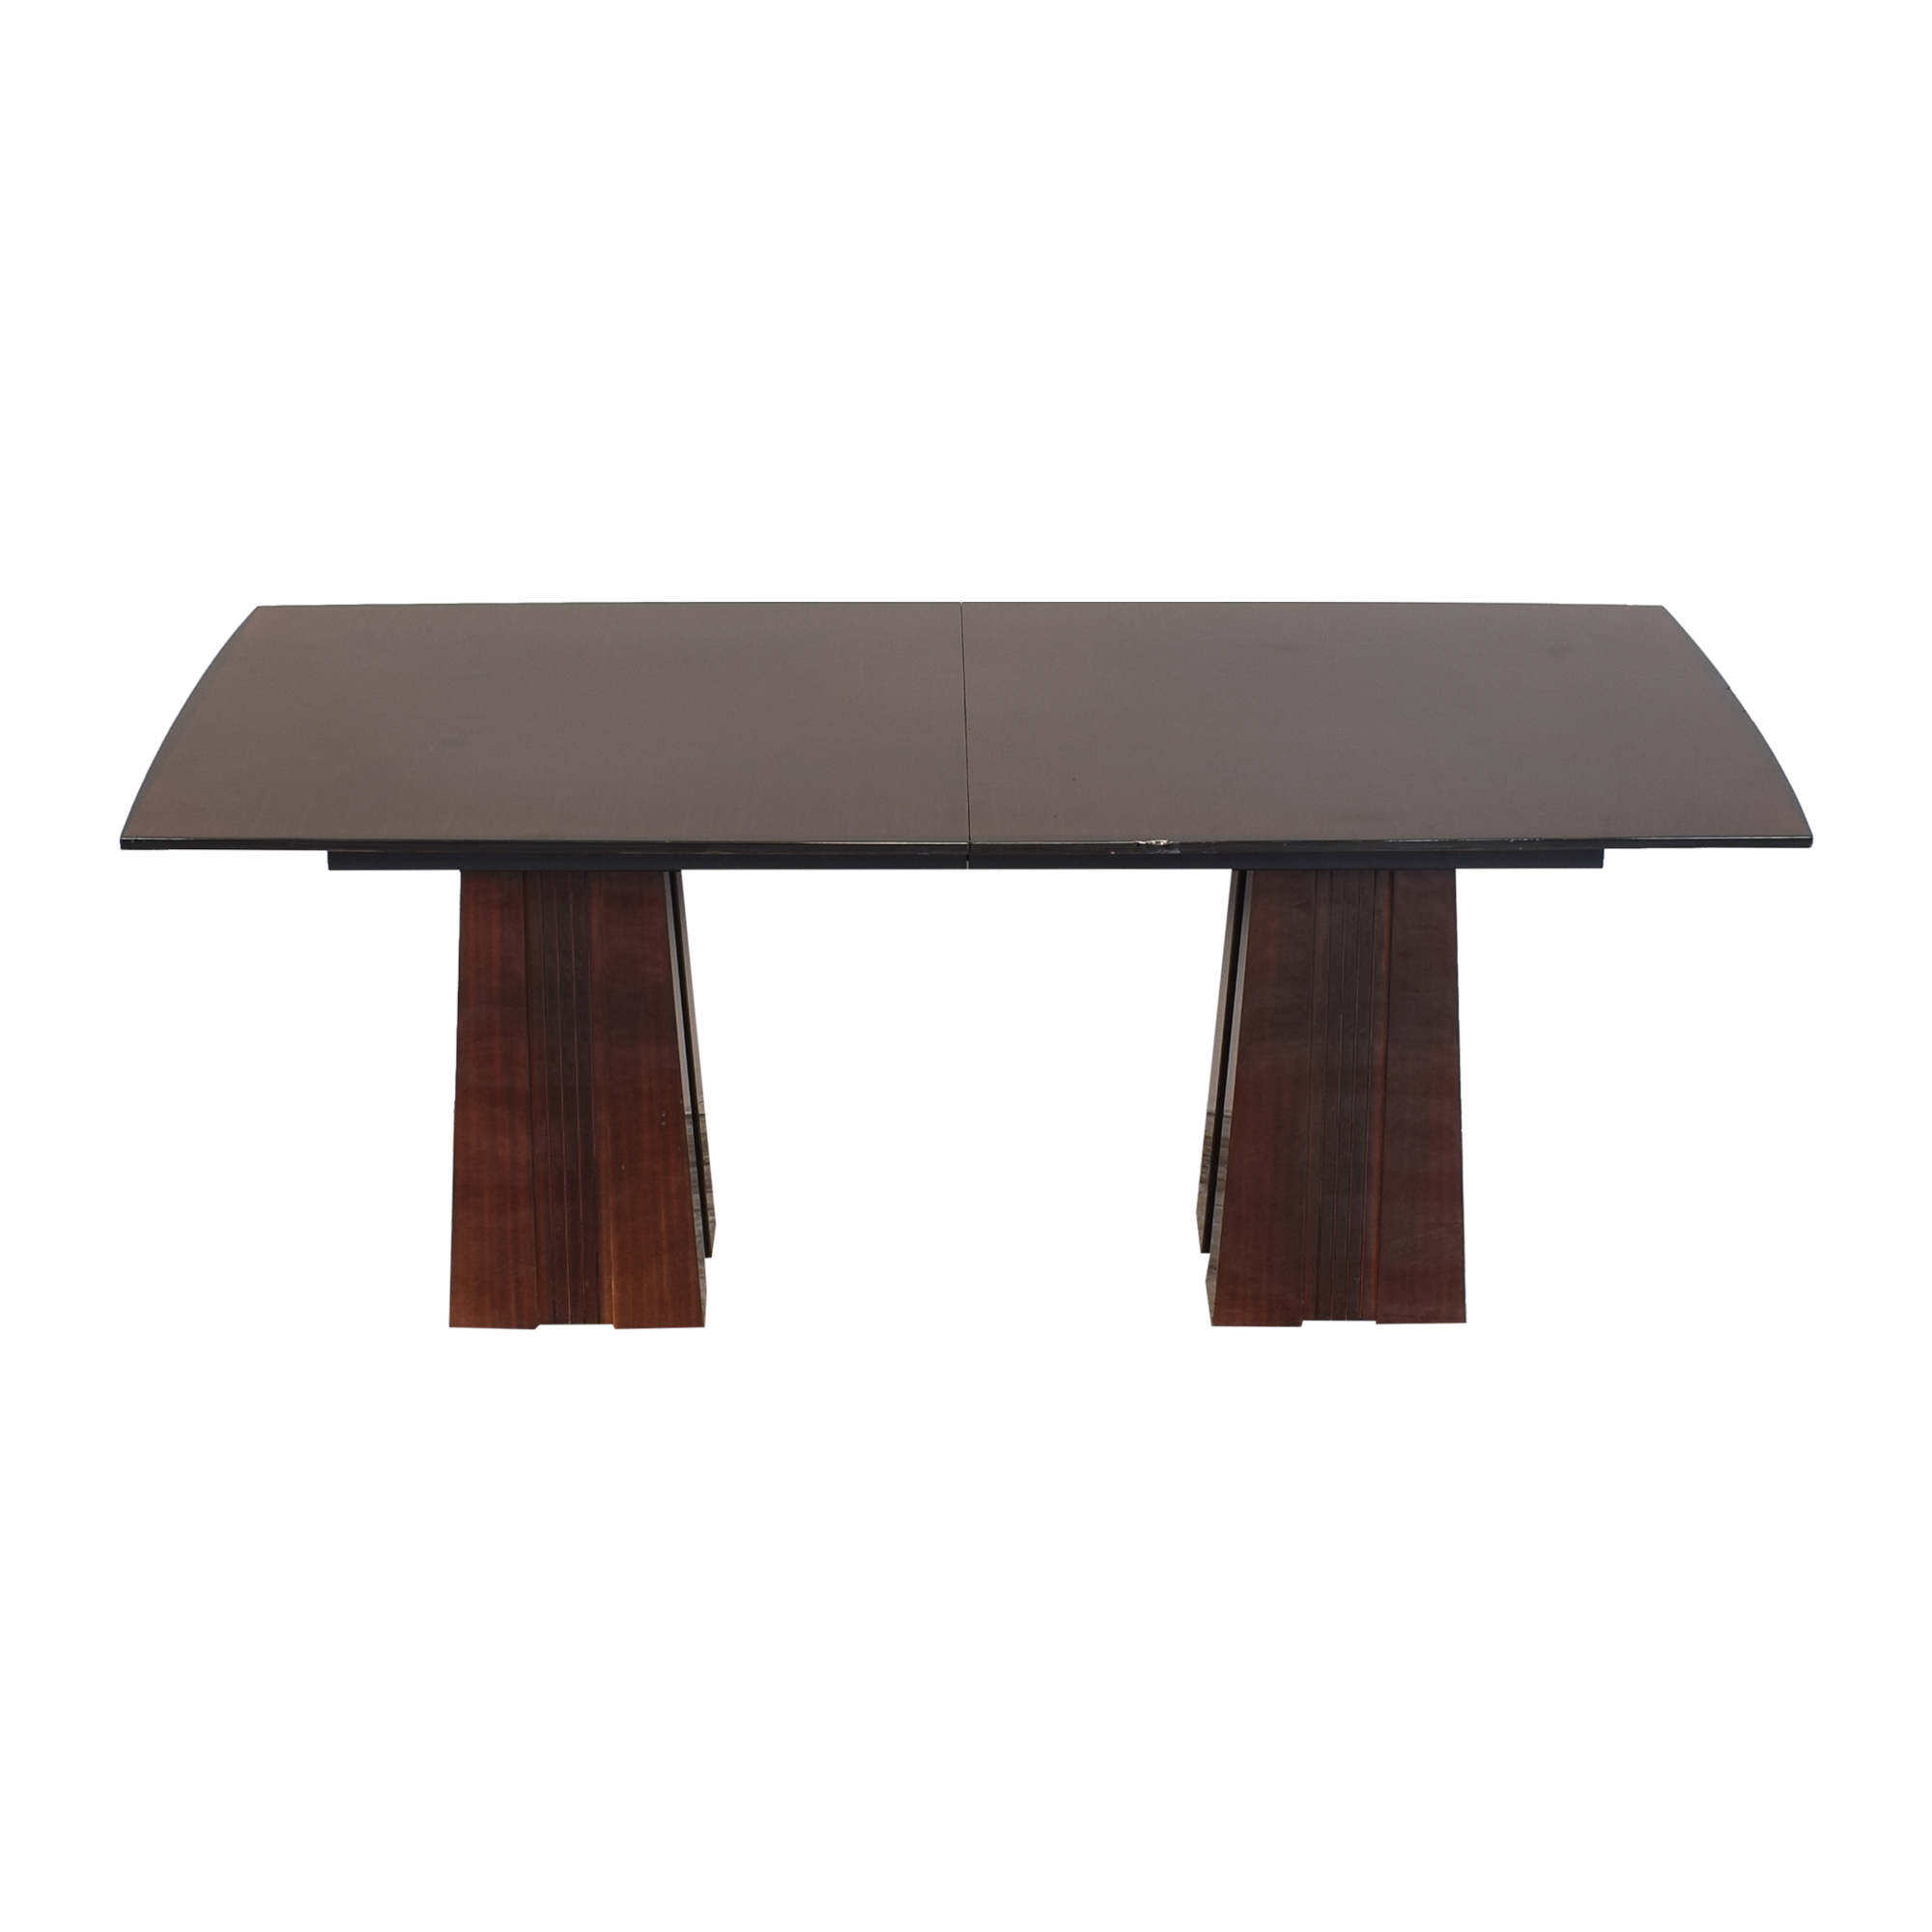 Dakota Jackson Dakota Jackson Ariel Collection Dining Table nj